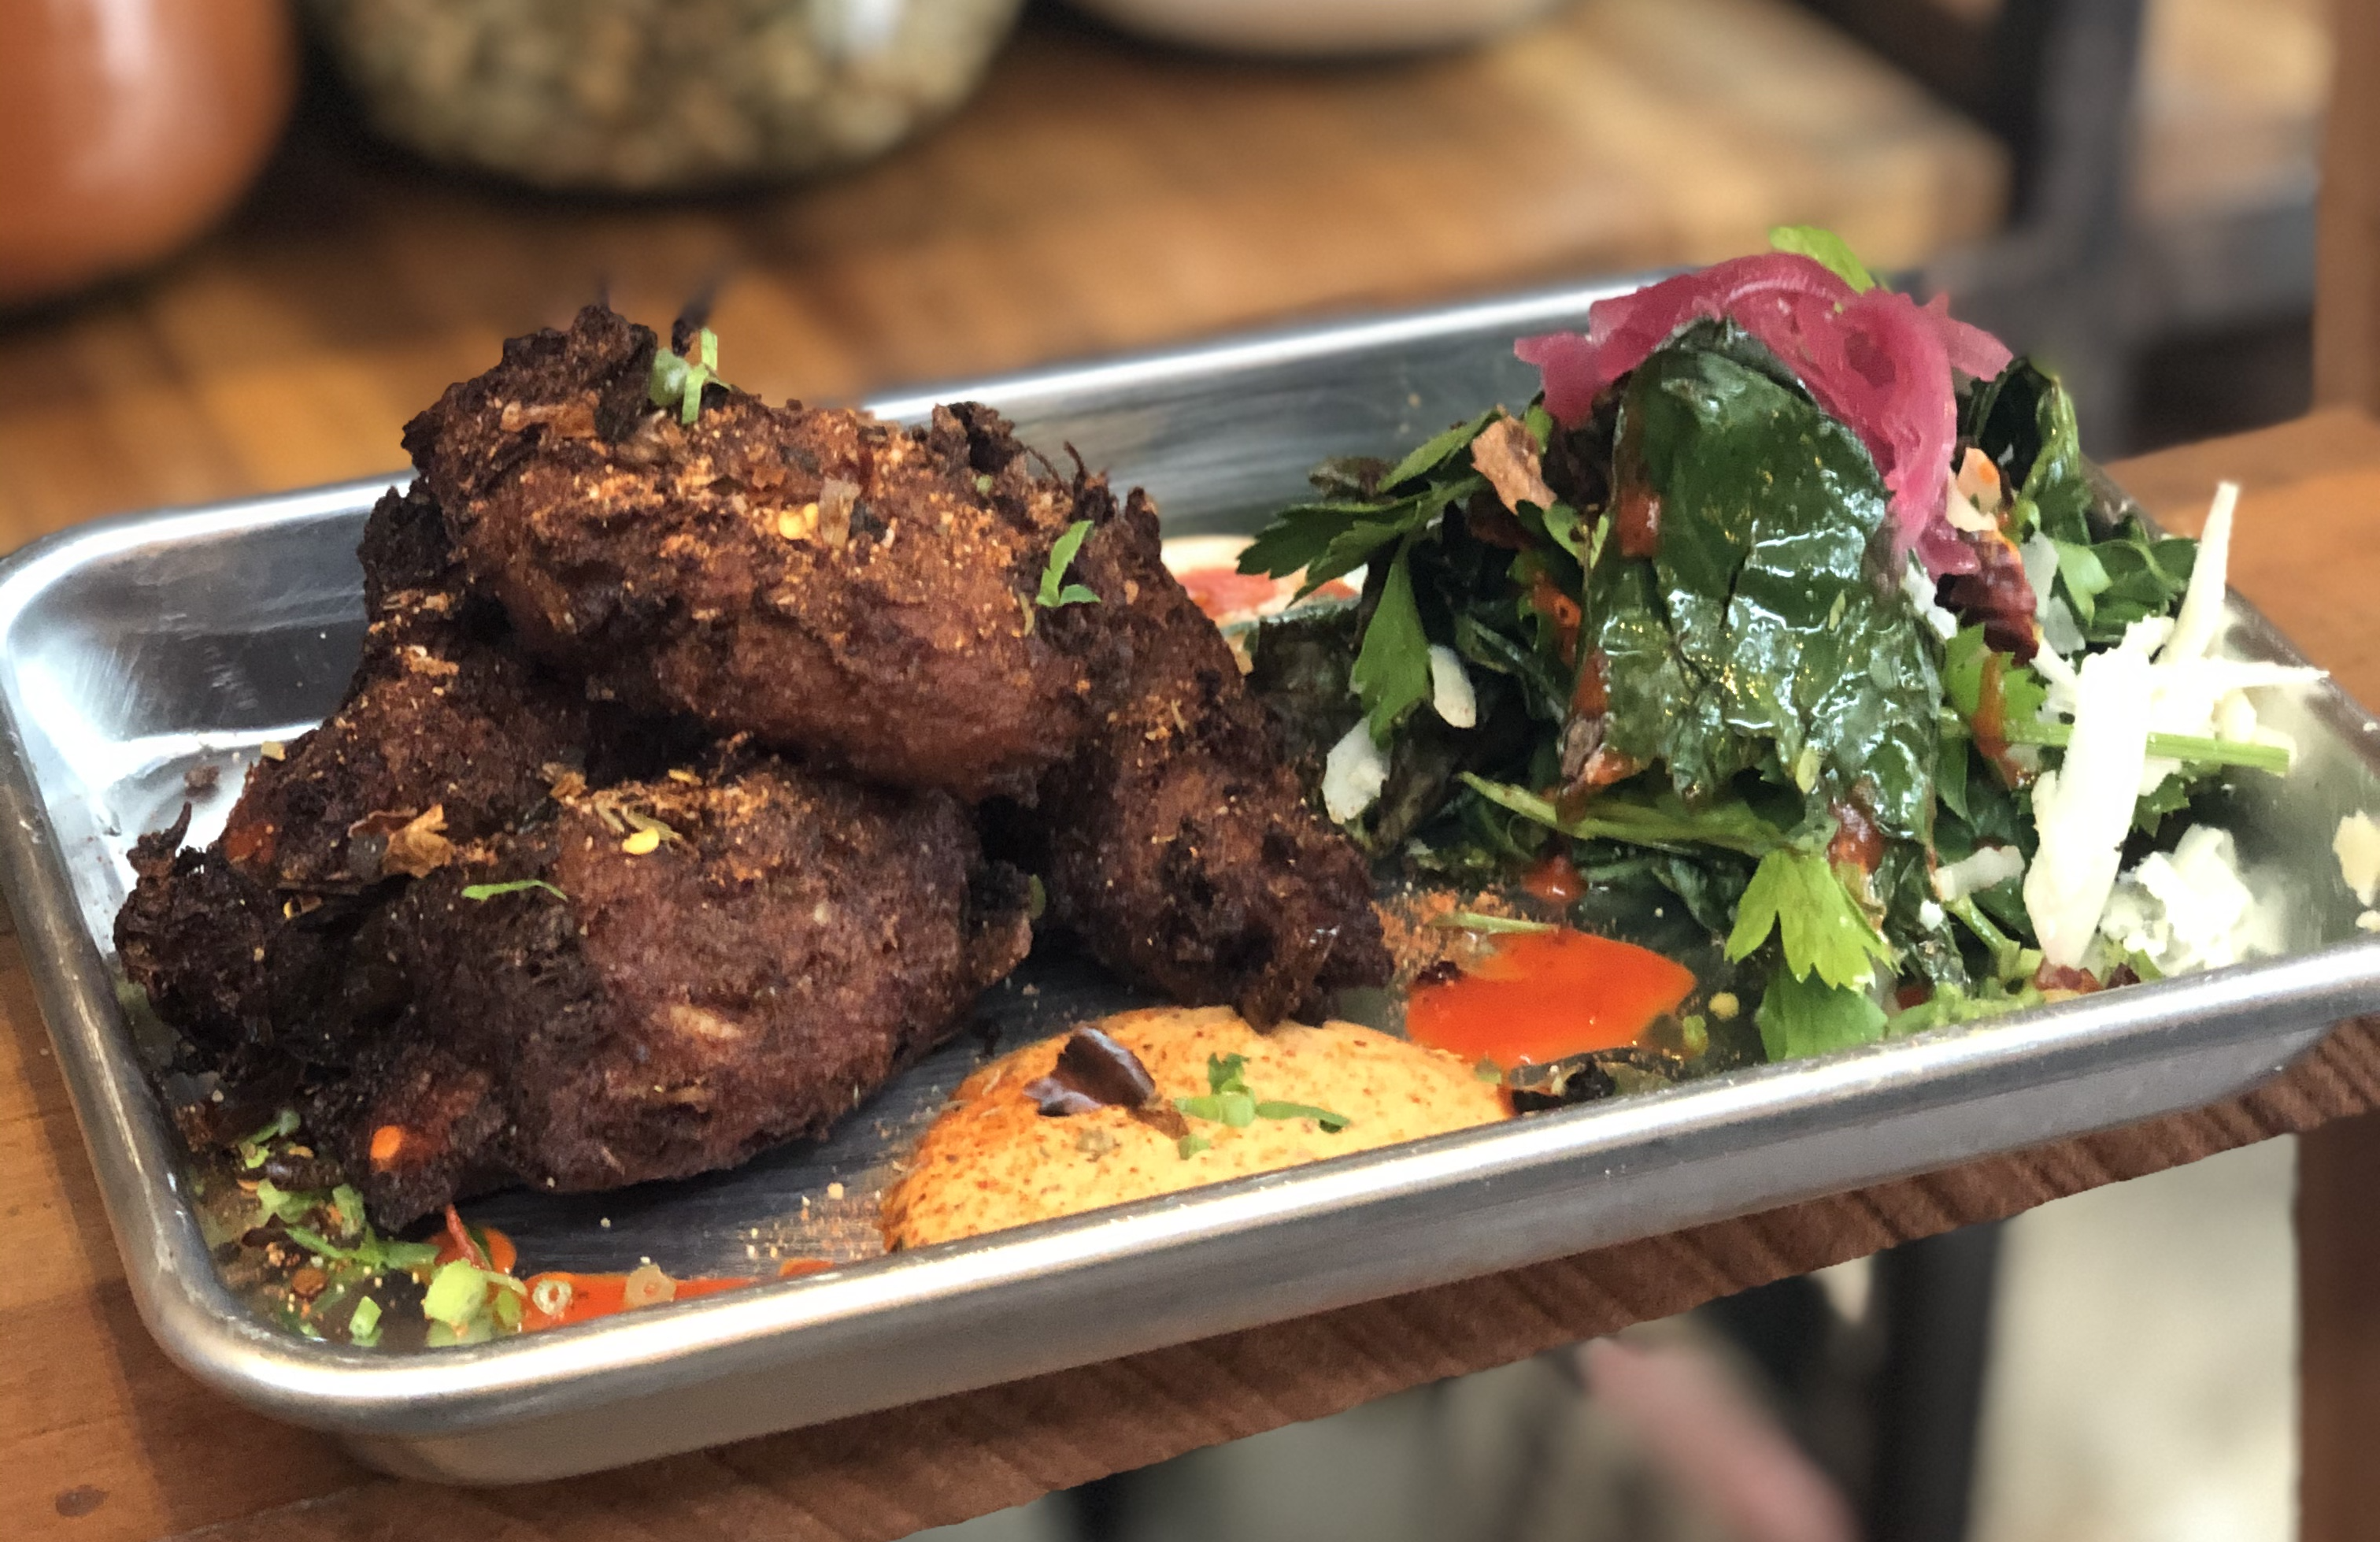 Fried boudin balls served with a green salad